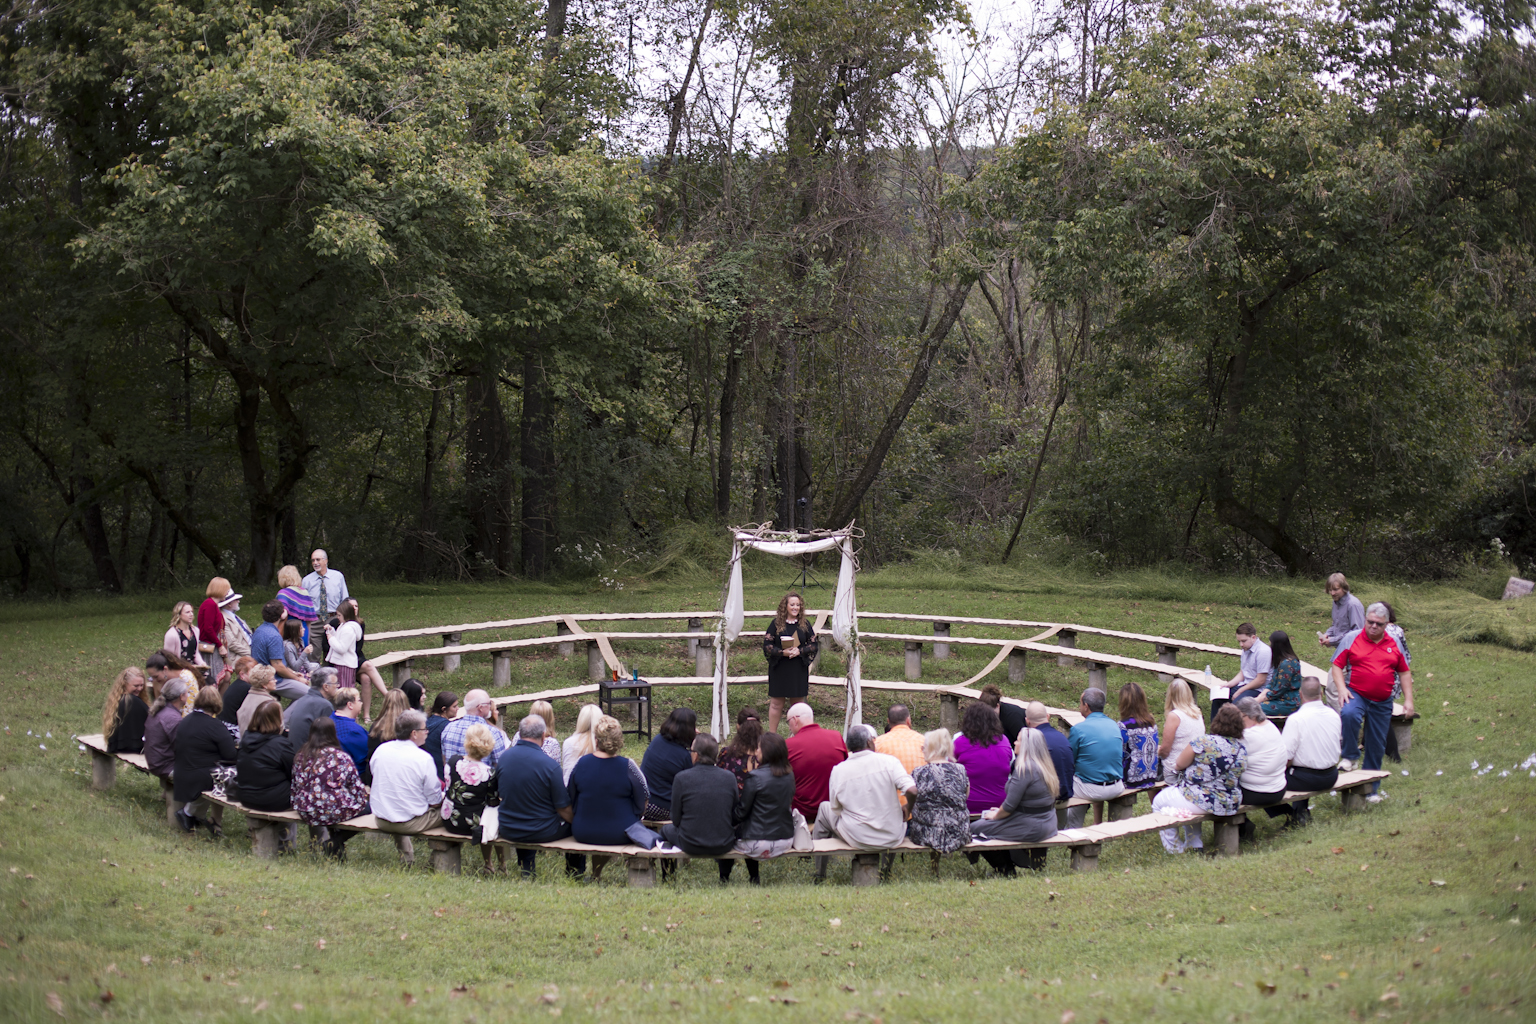 My first wedding in the round! This was really cool and made a very intimate and special circle around these two special people tying the knot.